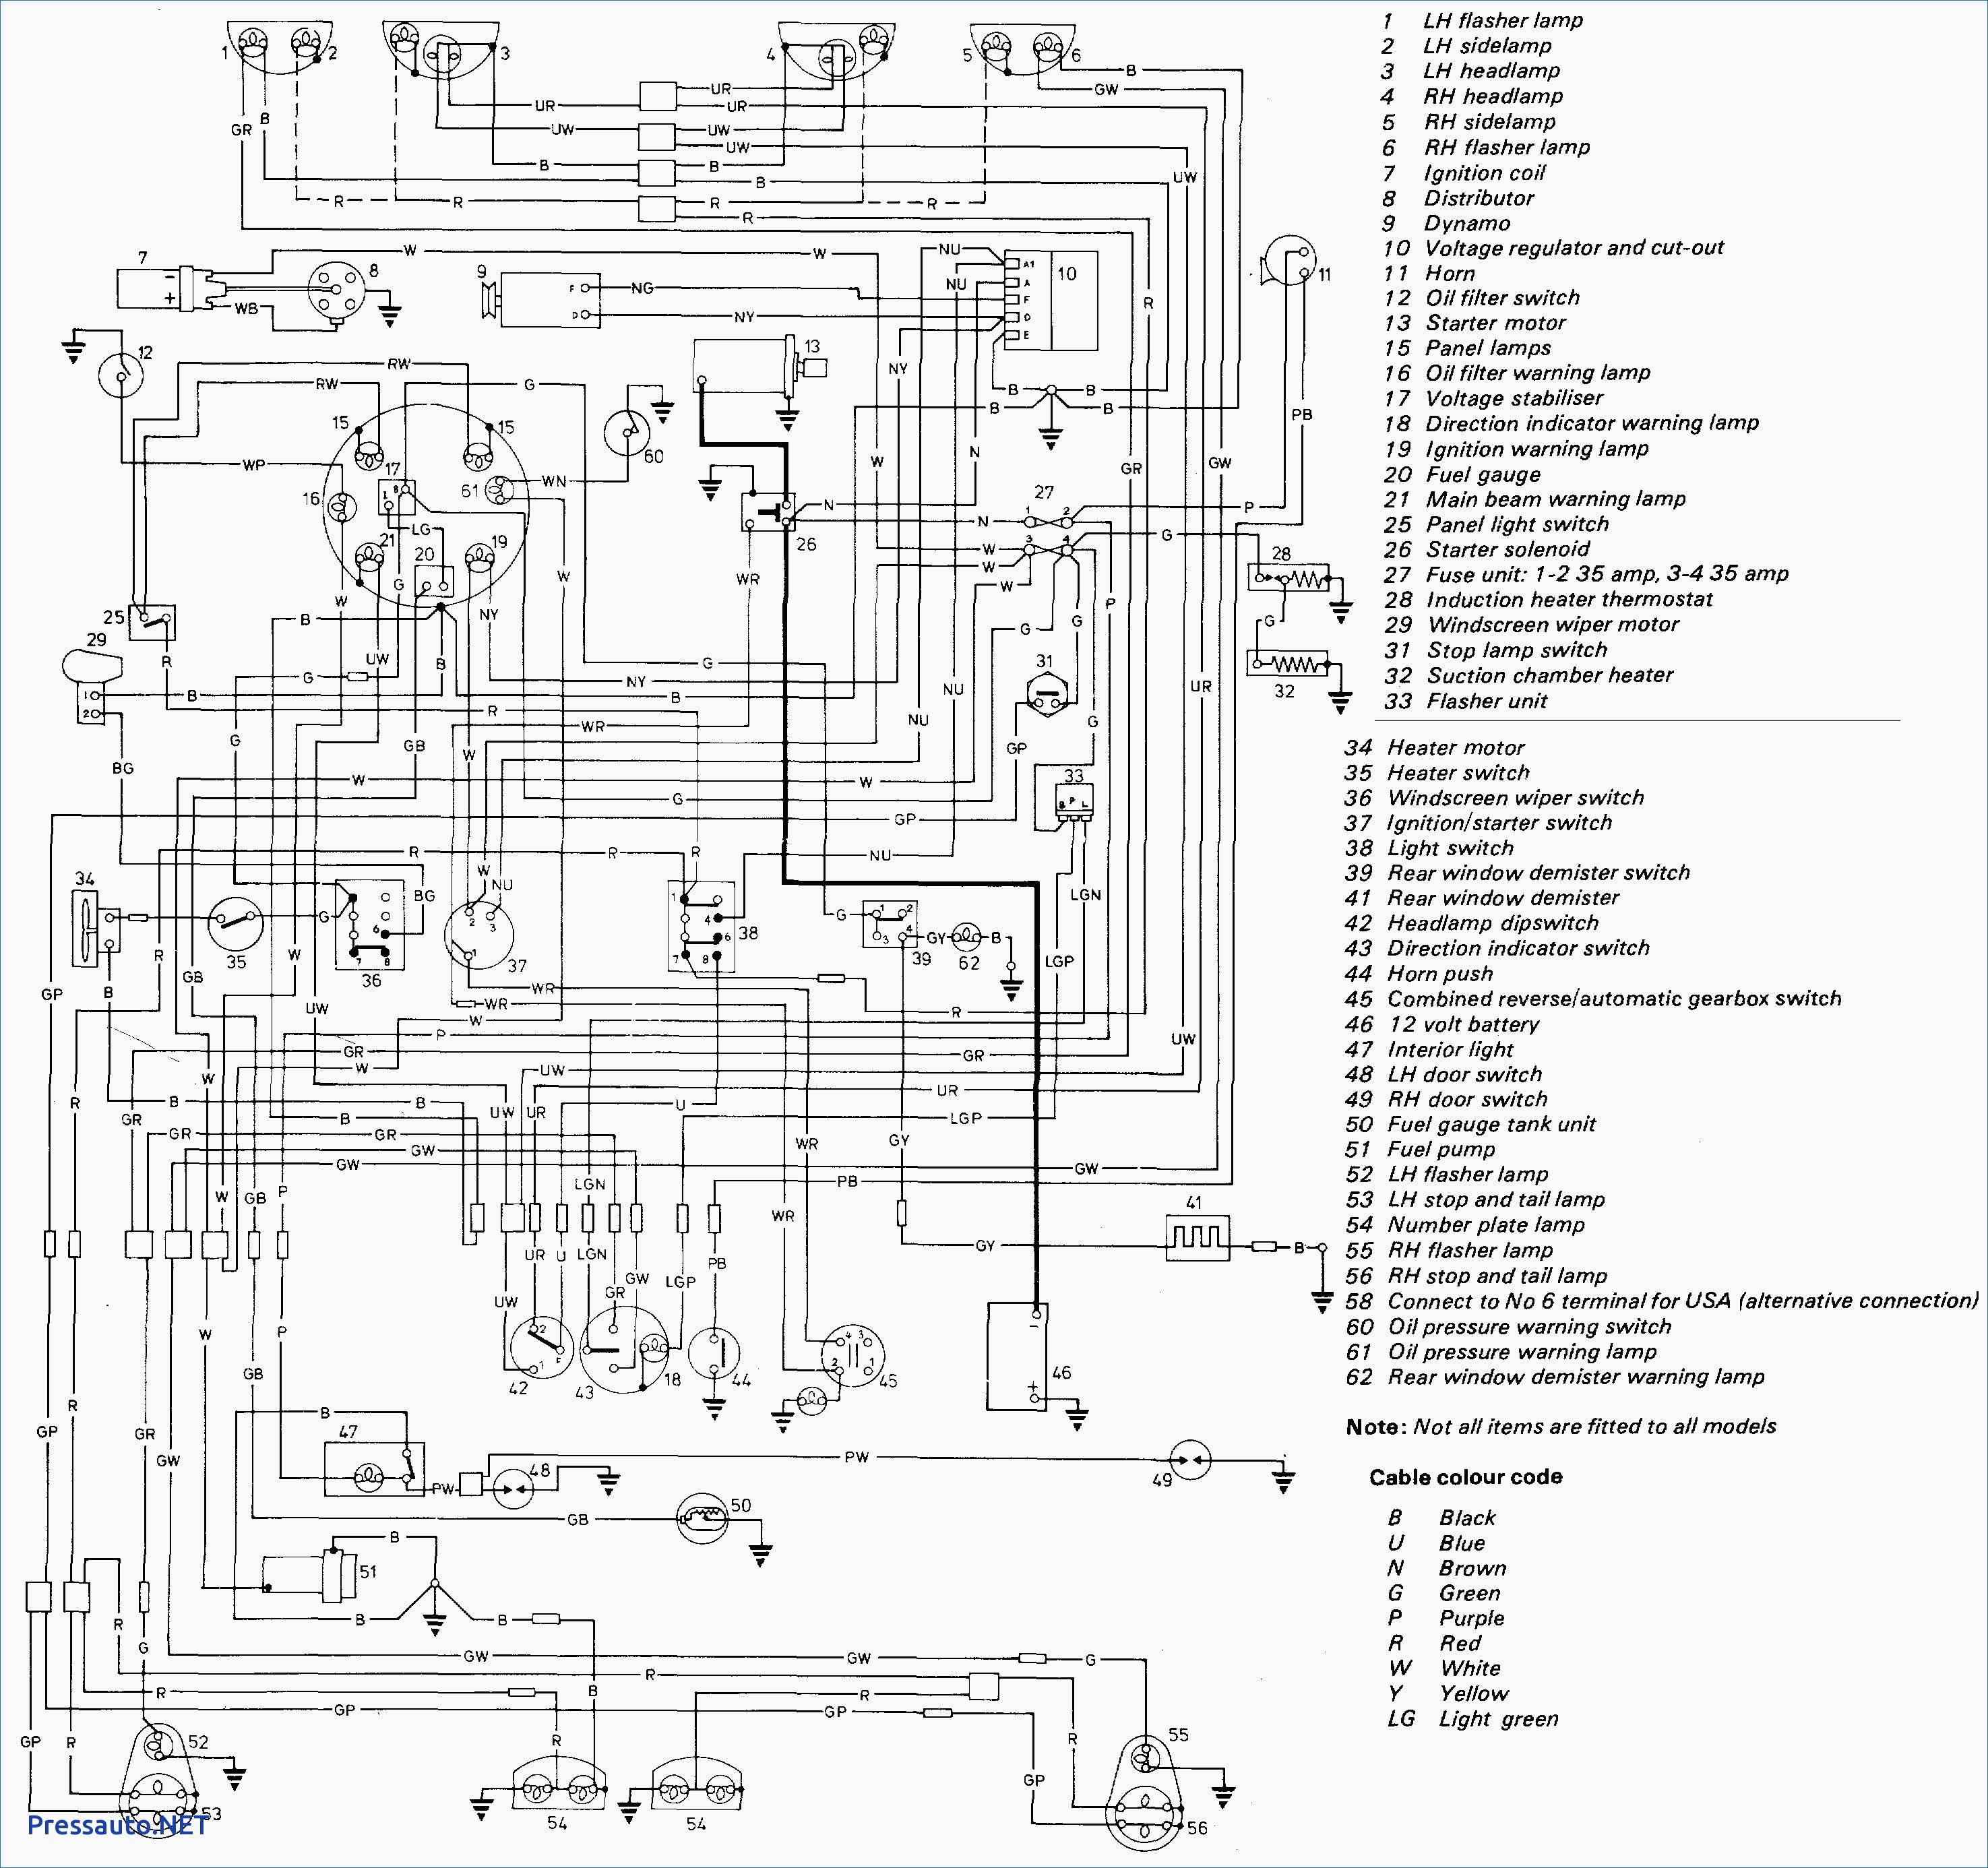 Diagram Trane Chiller Wiring Diagram Full Version Hd Quality Wiring Diagram Wiringshopk Urbanamentevitale It